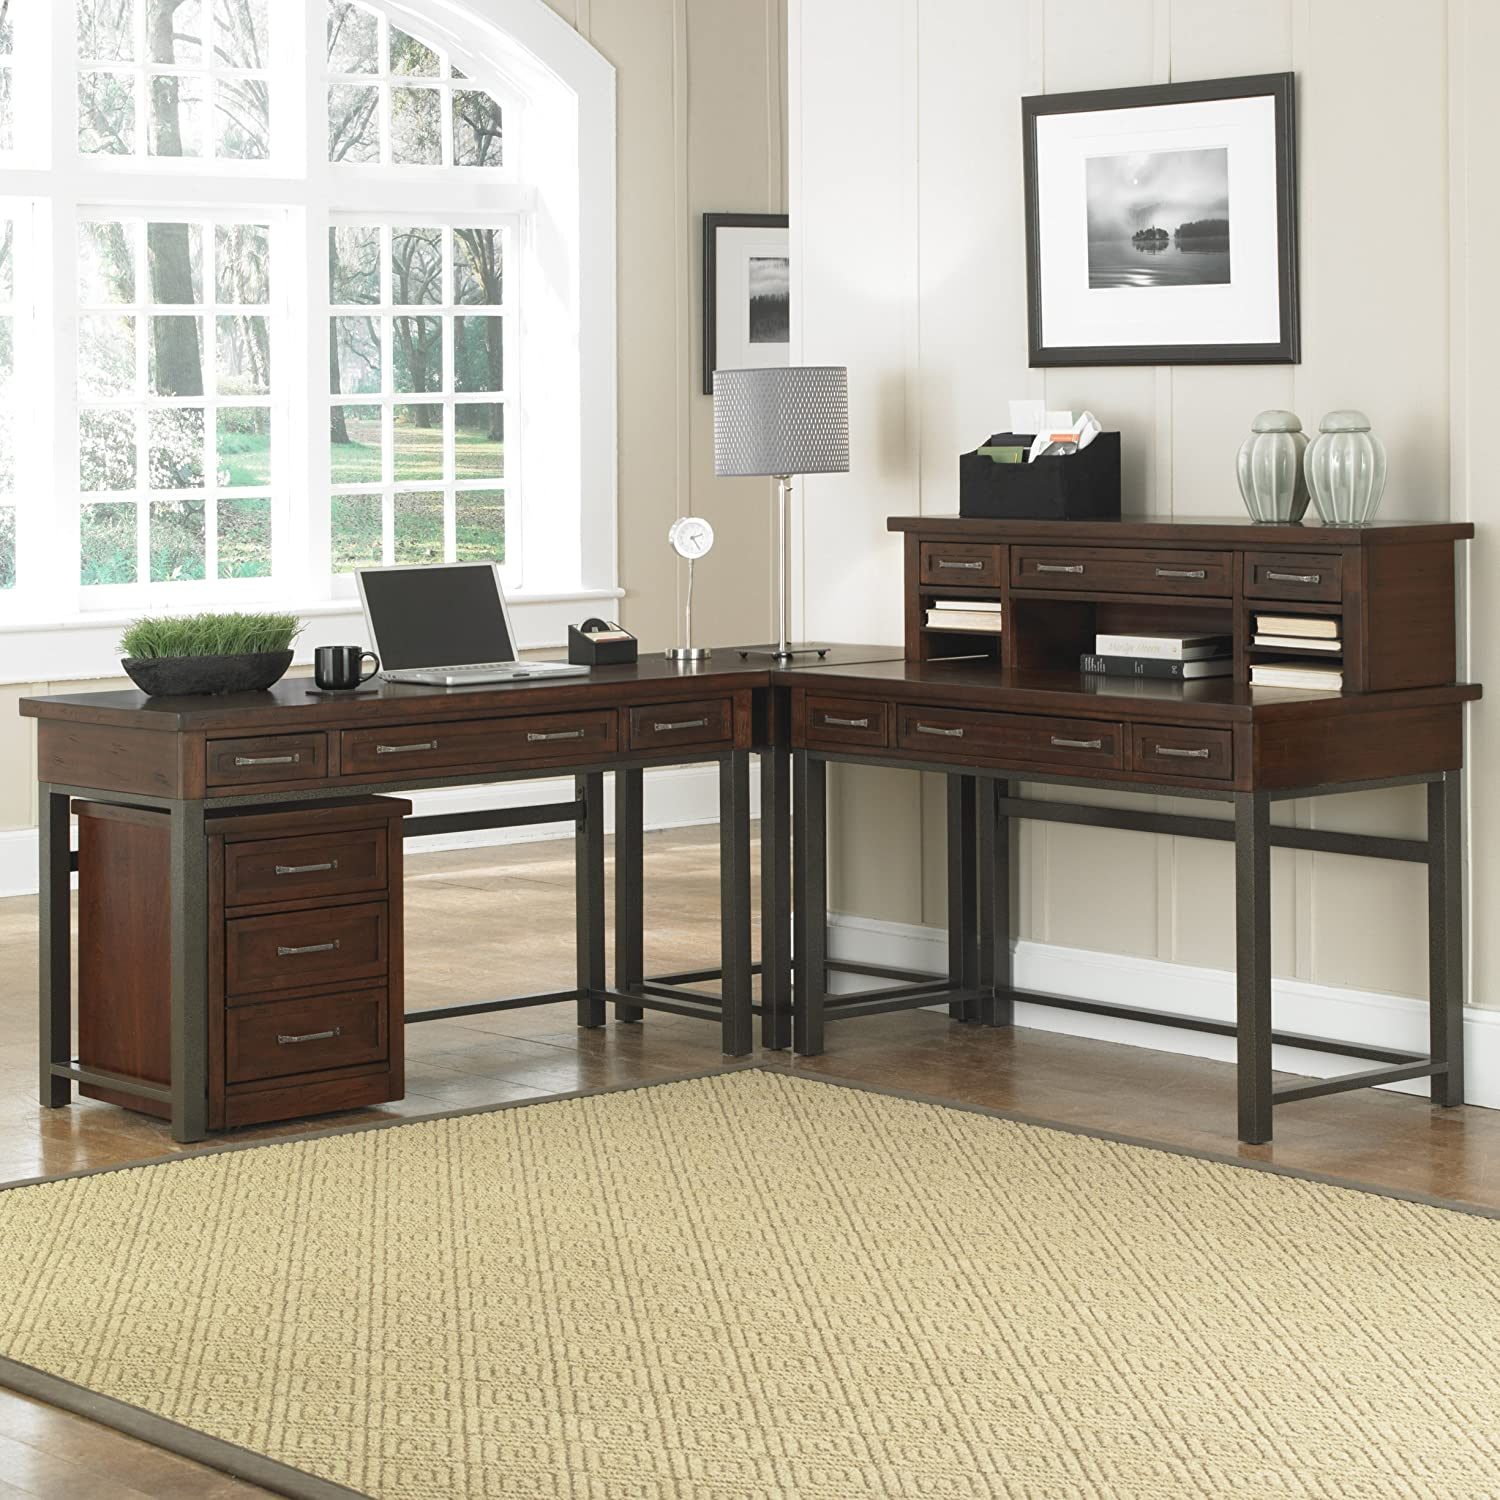 cabin office furniture. Amazon.com: Home Styles Cabin Creek Corner L Desk And Mobile File: Kitchen \u0026 Dining Office Furniture